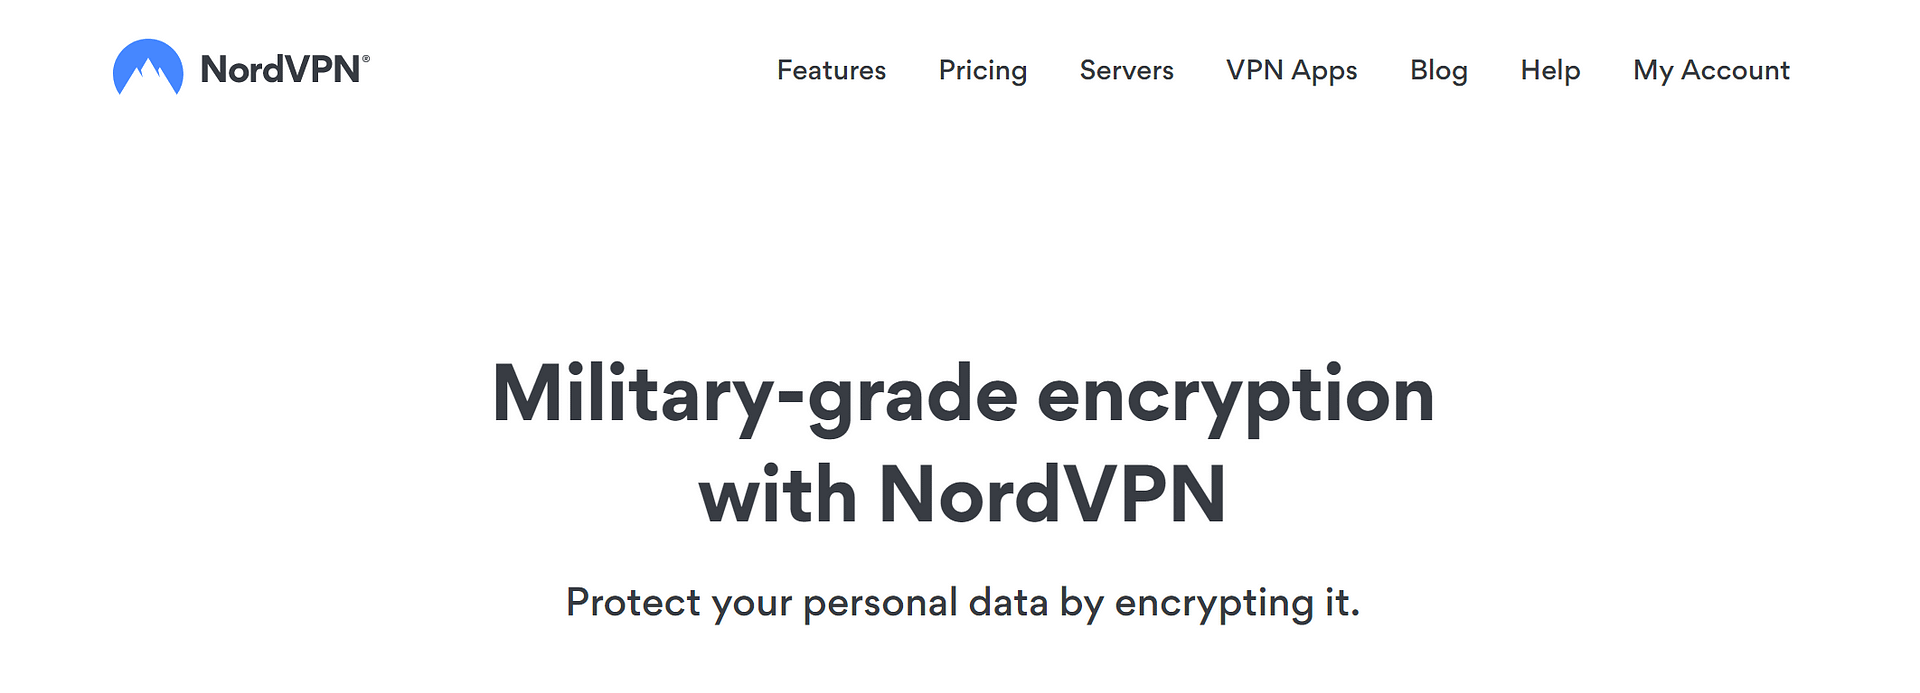 How a good VPN uses encryption